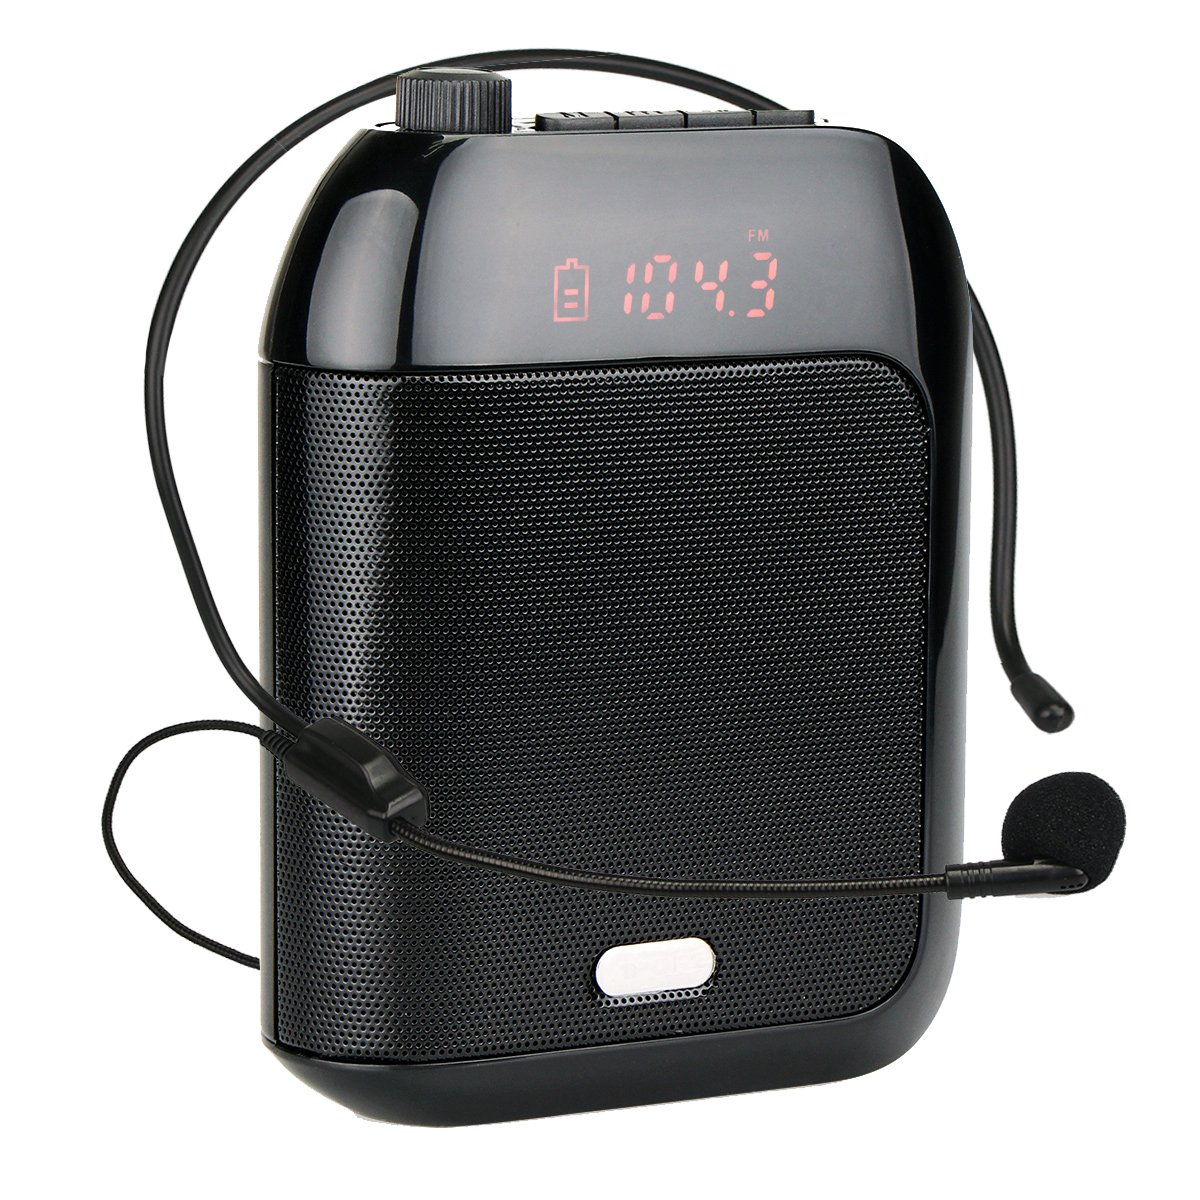 Retekess T9 15W Portable Voice Amplifier Rechargeable Mini With Wired Microphone Headset FM AUX In Jack MP3 Player Voice Recording for Teachers Coaches Training Fitness Class(Black) by Retekess (Image #1)